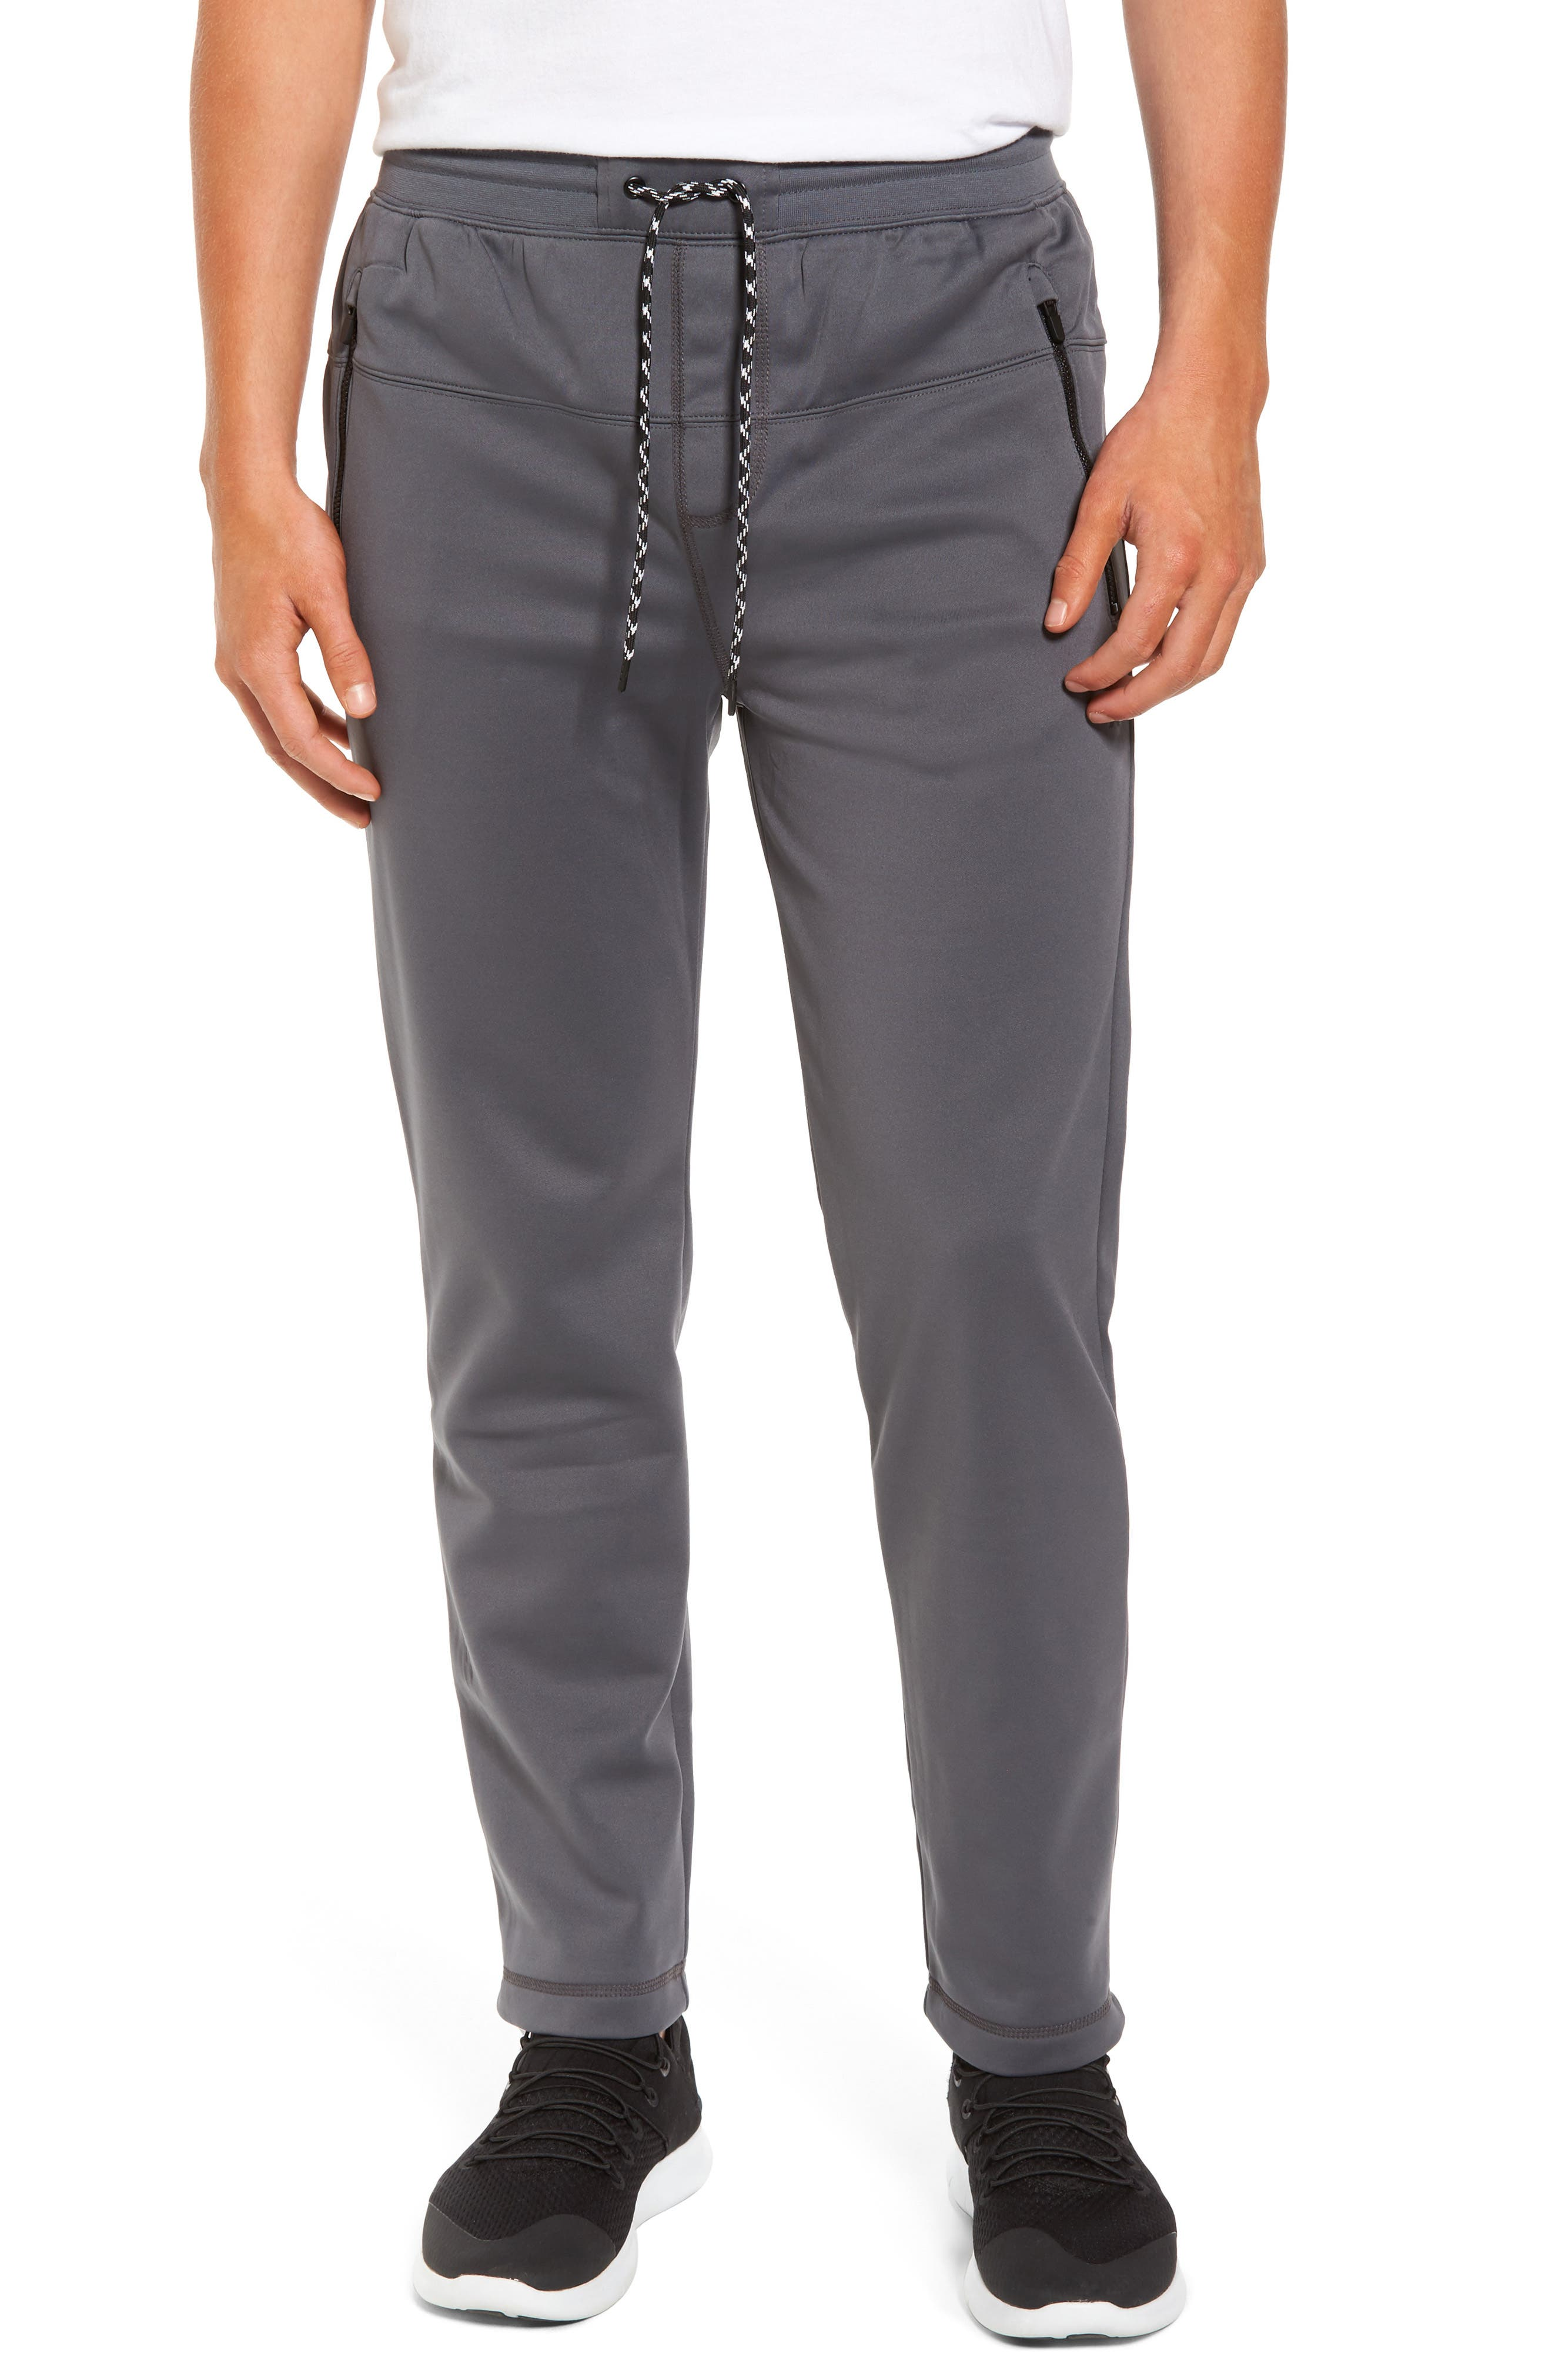 Alternate Image 1 Selected - Hurley Therma Protect Pants